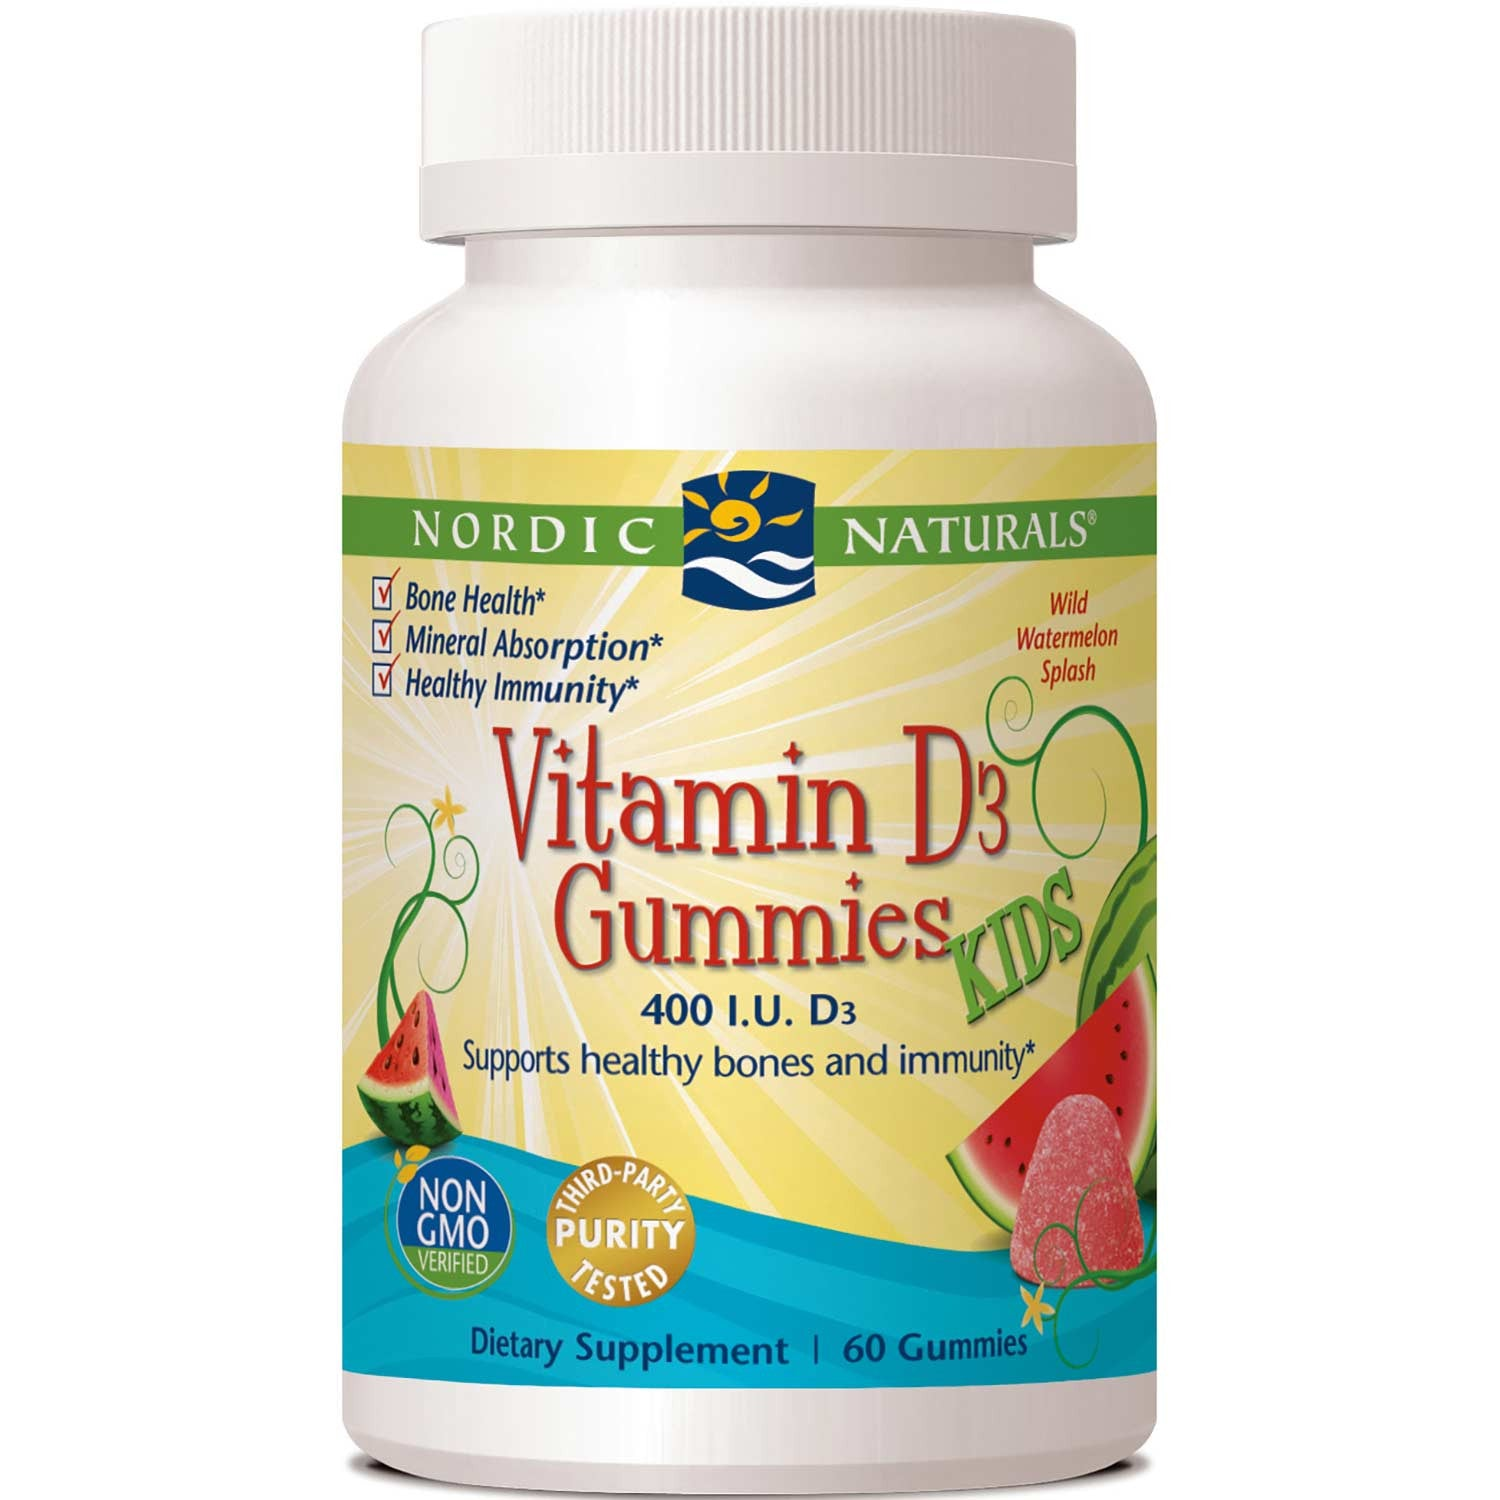 Nordic Naturals Vitamin D3 Gummies KIDS - Wild Watermelon Splash, 60 gums.-NaturesWisdom